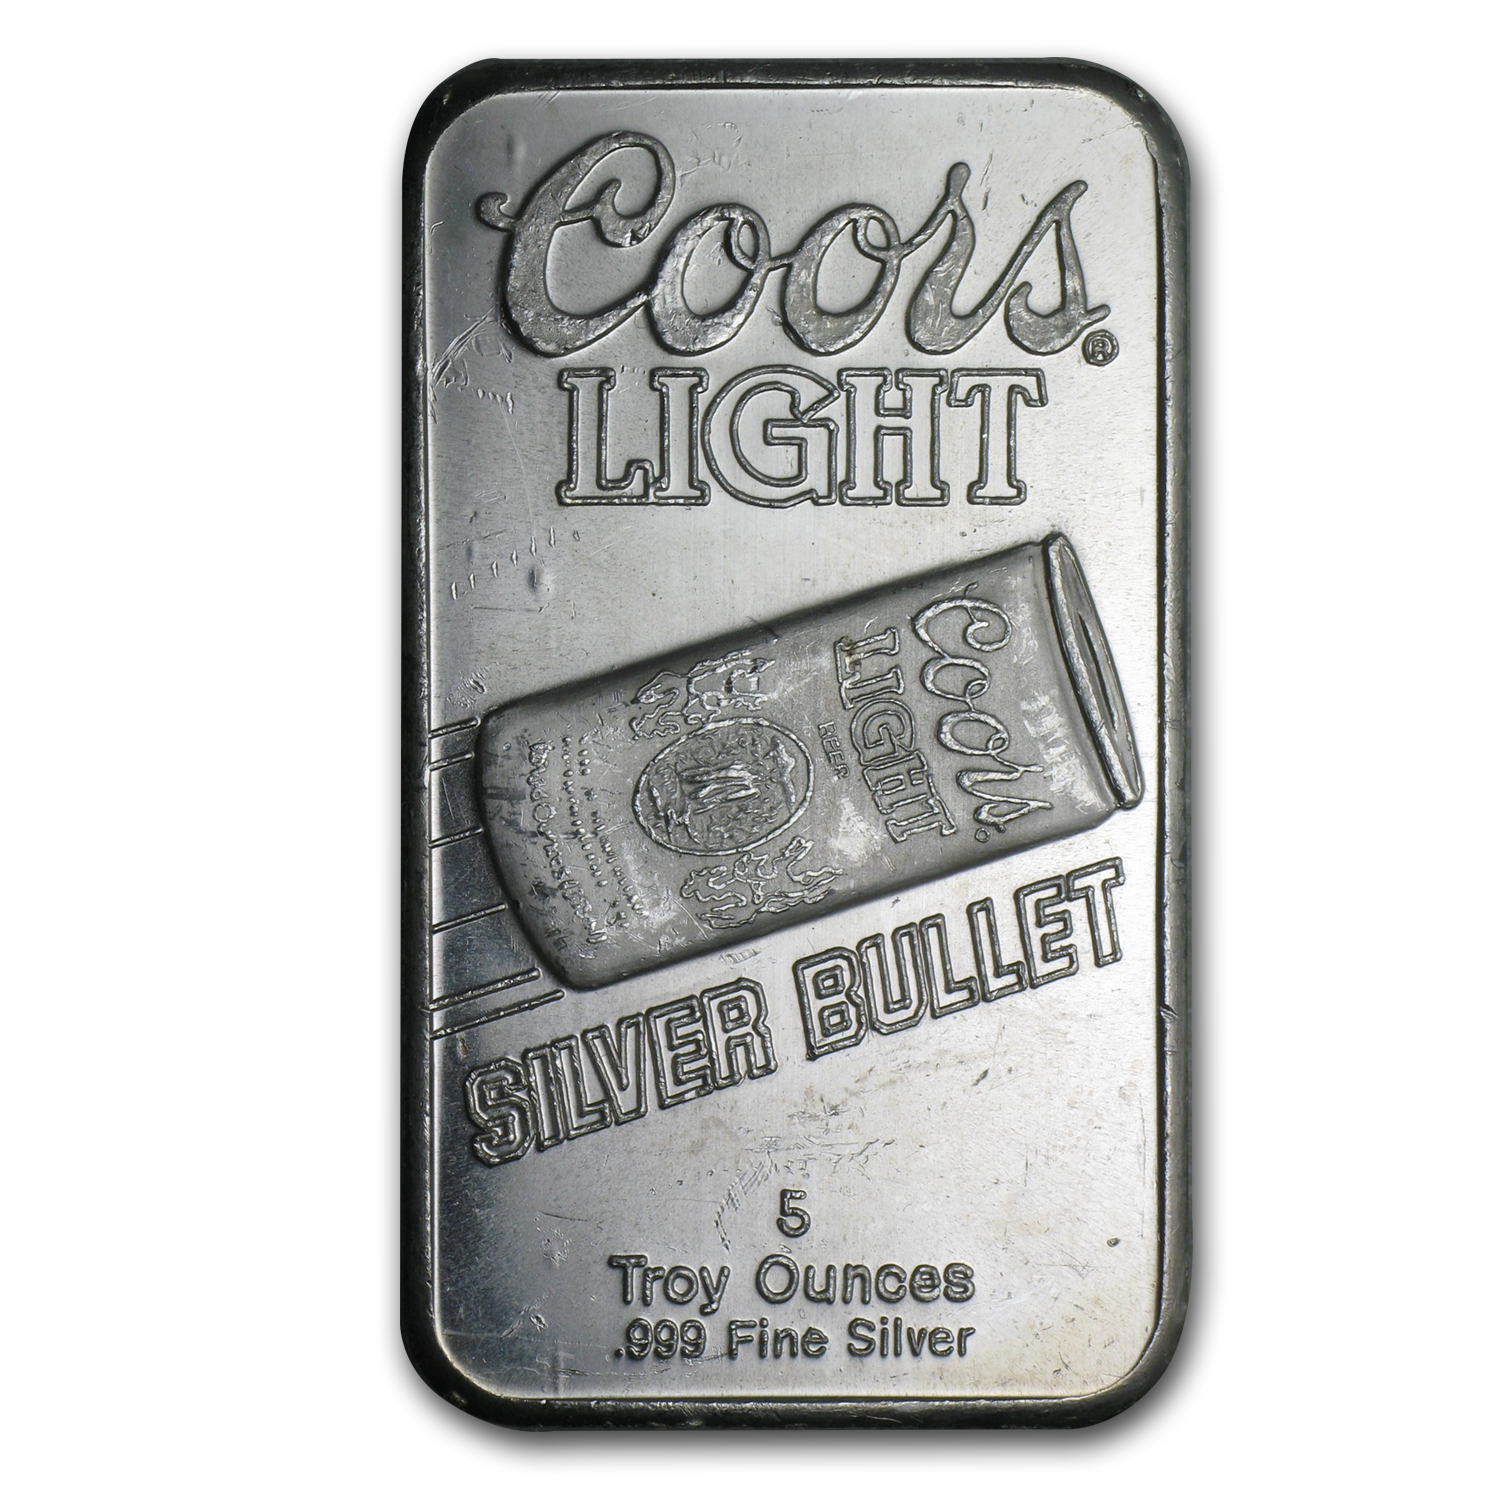 5 oz Silver Bars - Coors Light Silver Bullet